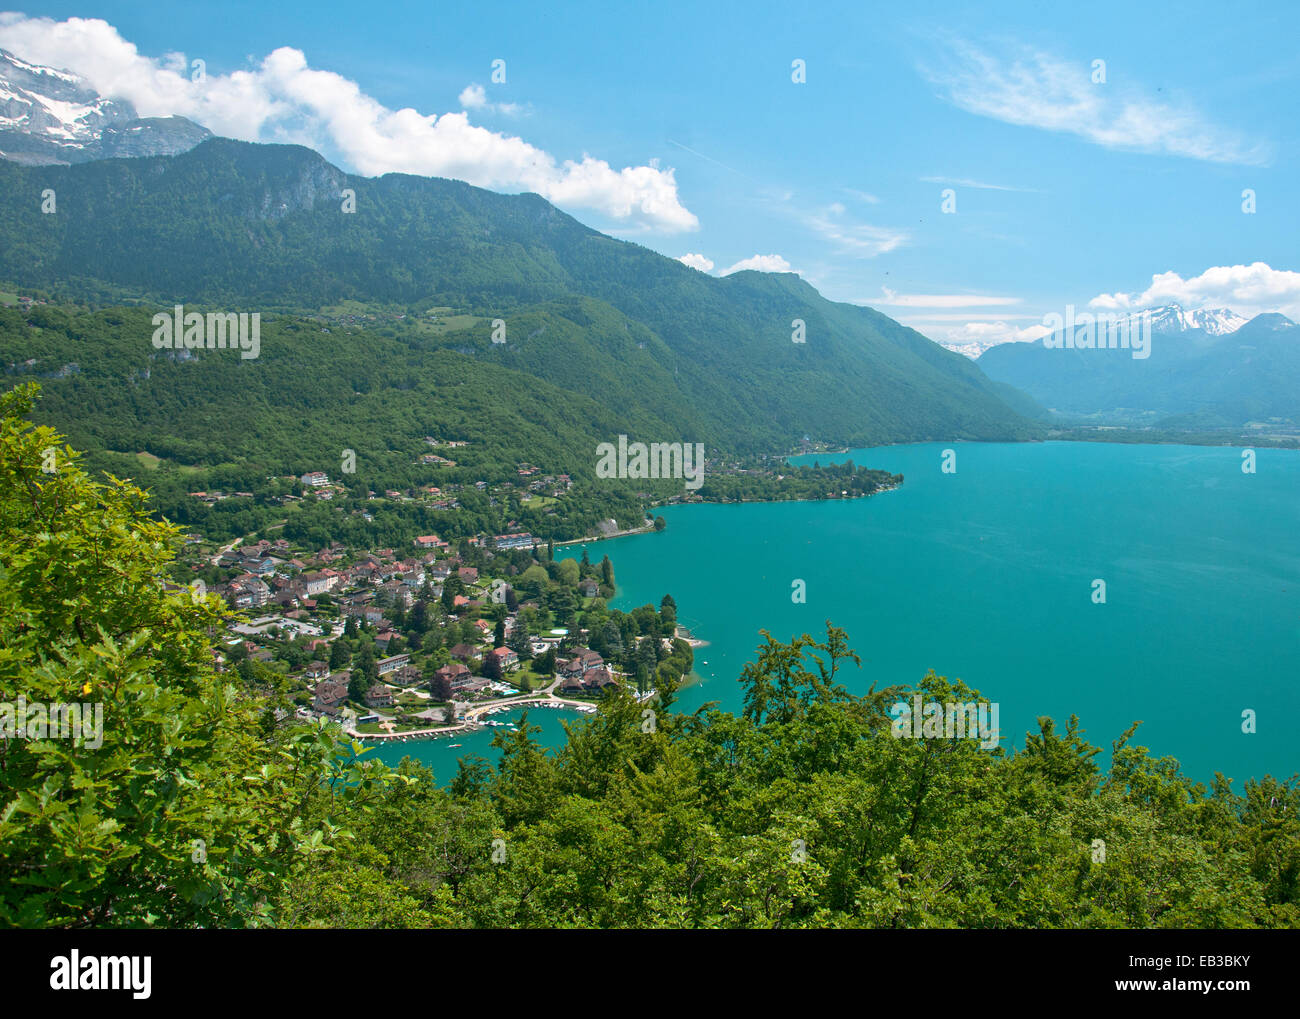 France, Annecy Lake, View of beautiful lake - Stock Image